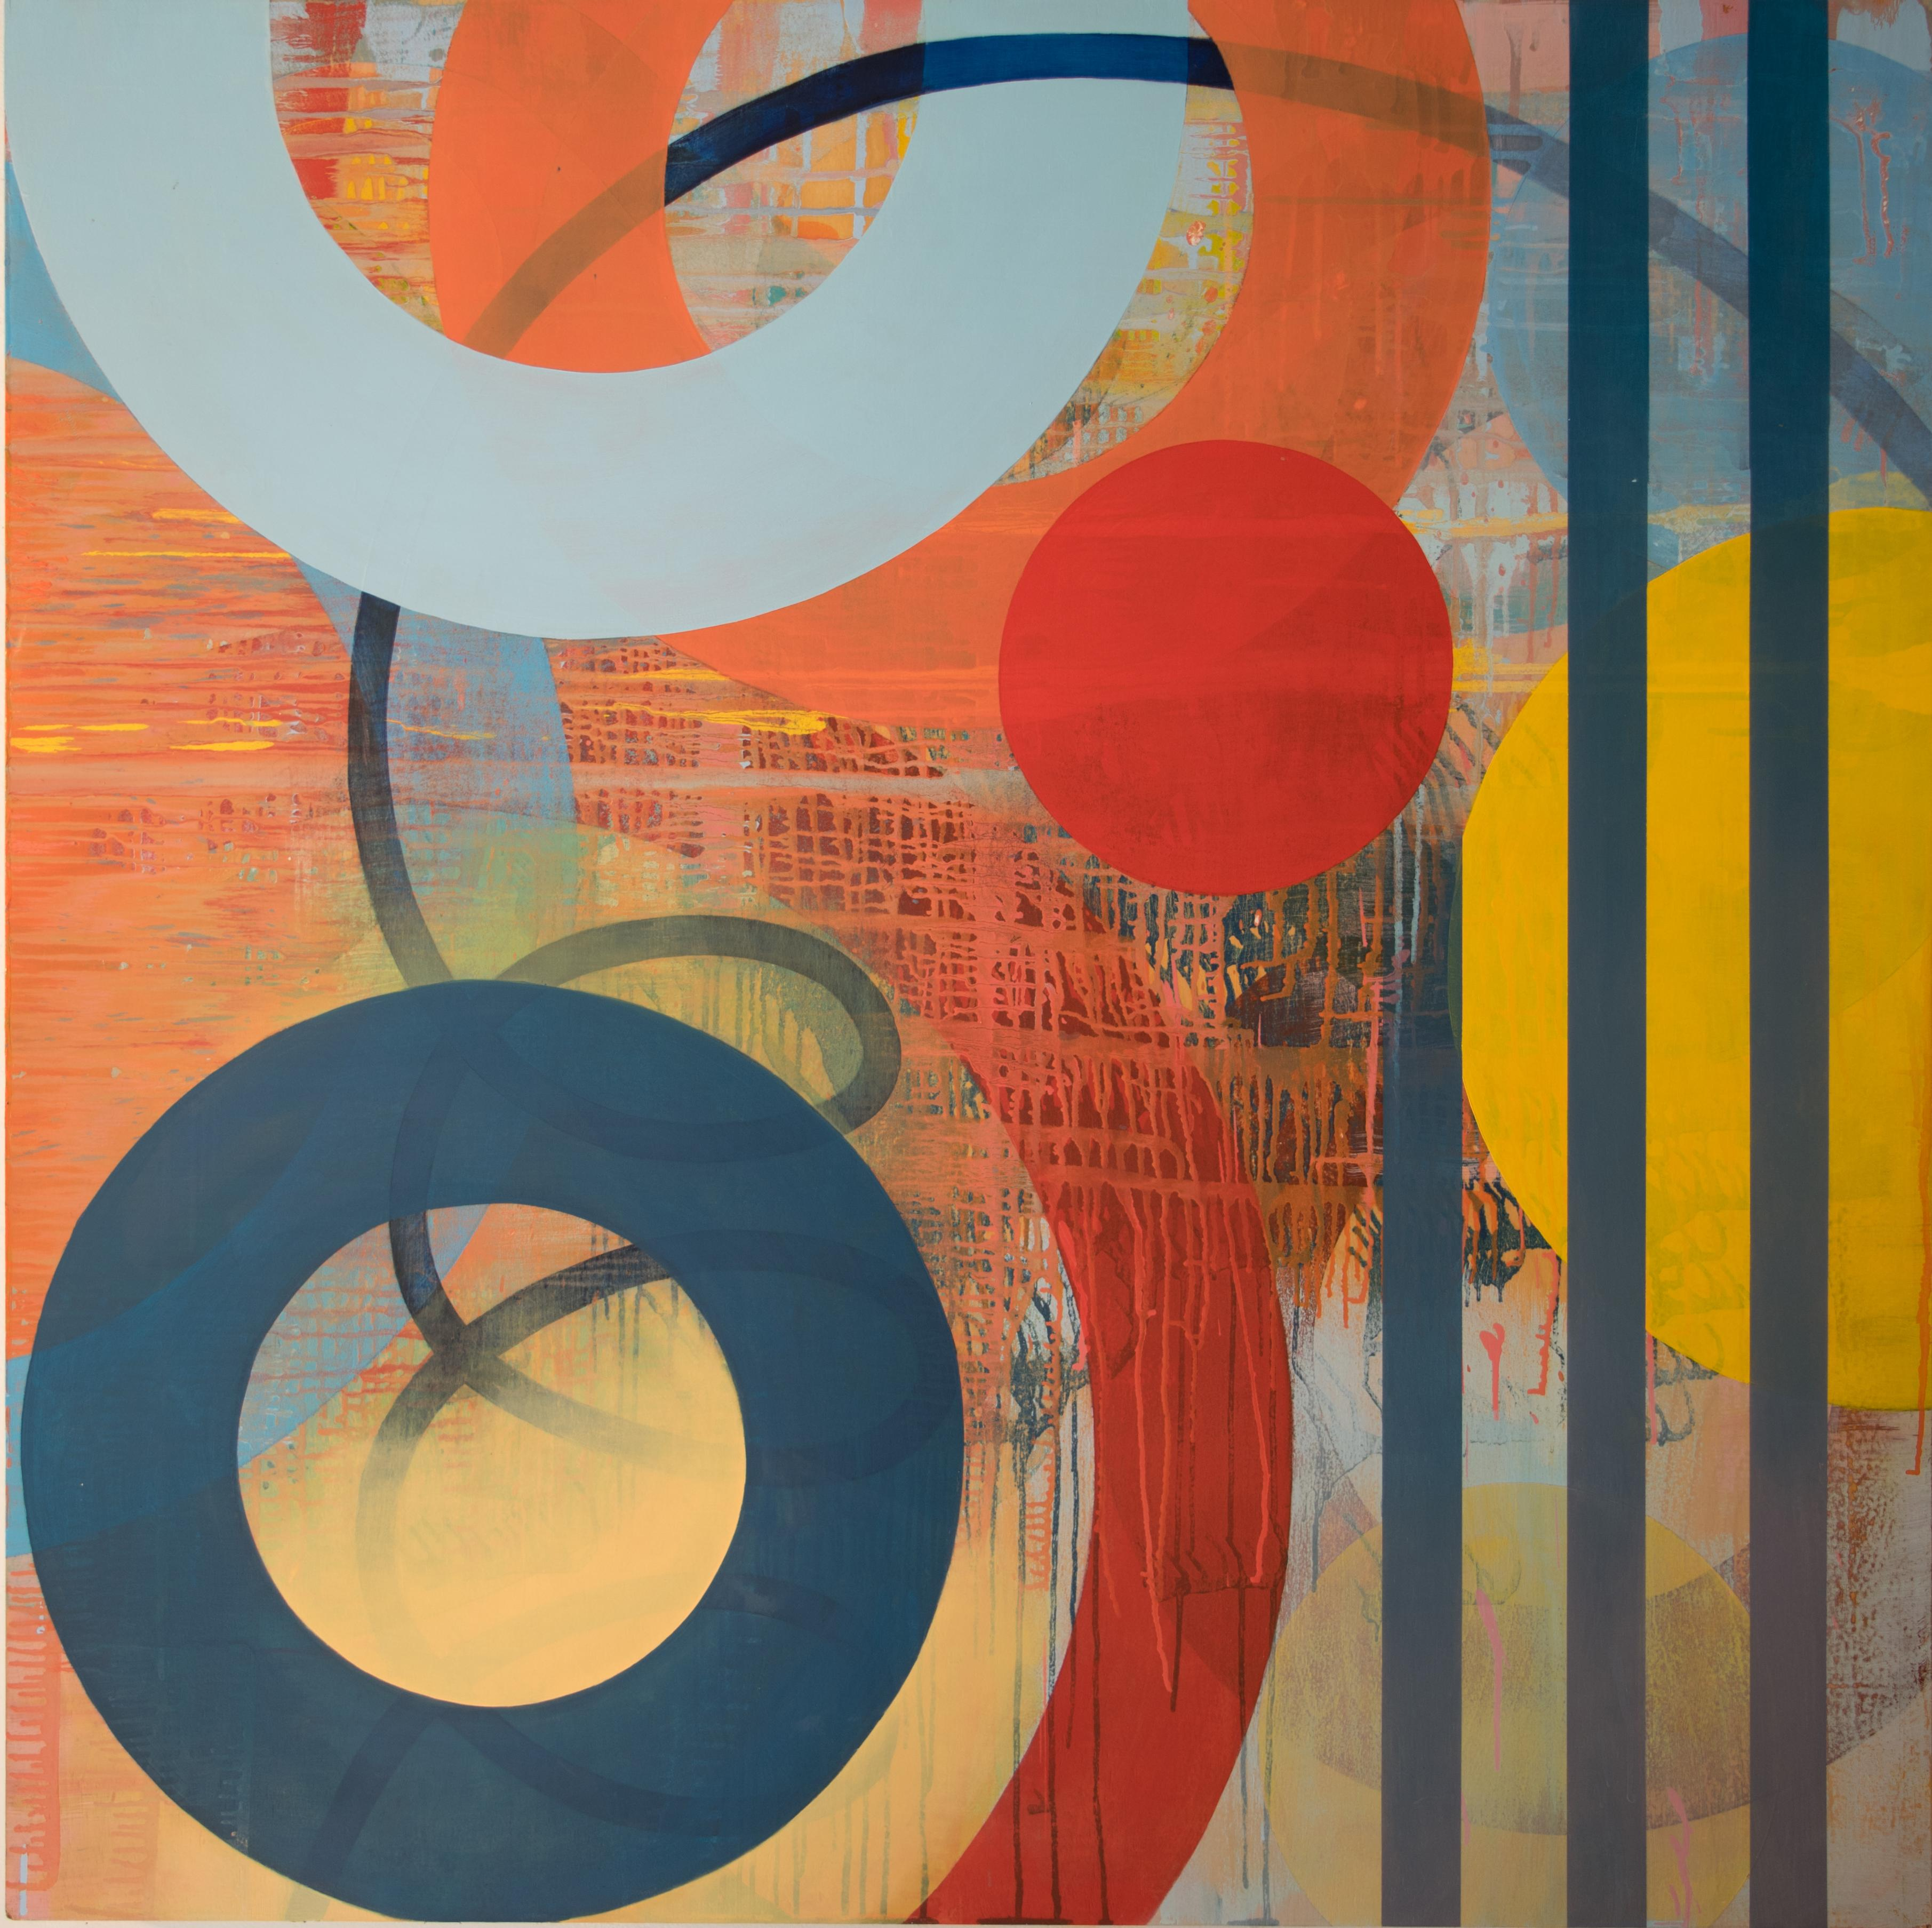 Square Contemporary Geometric Abstract Oil Painting by Linda Schmidt - Float